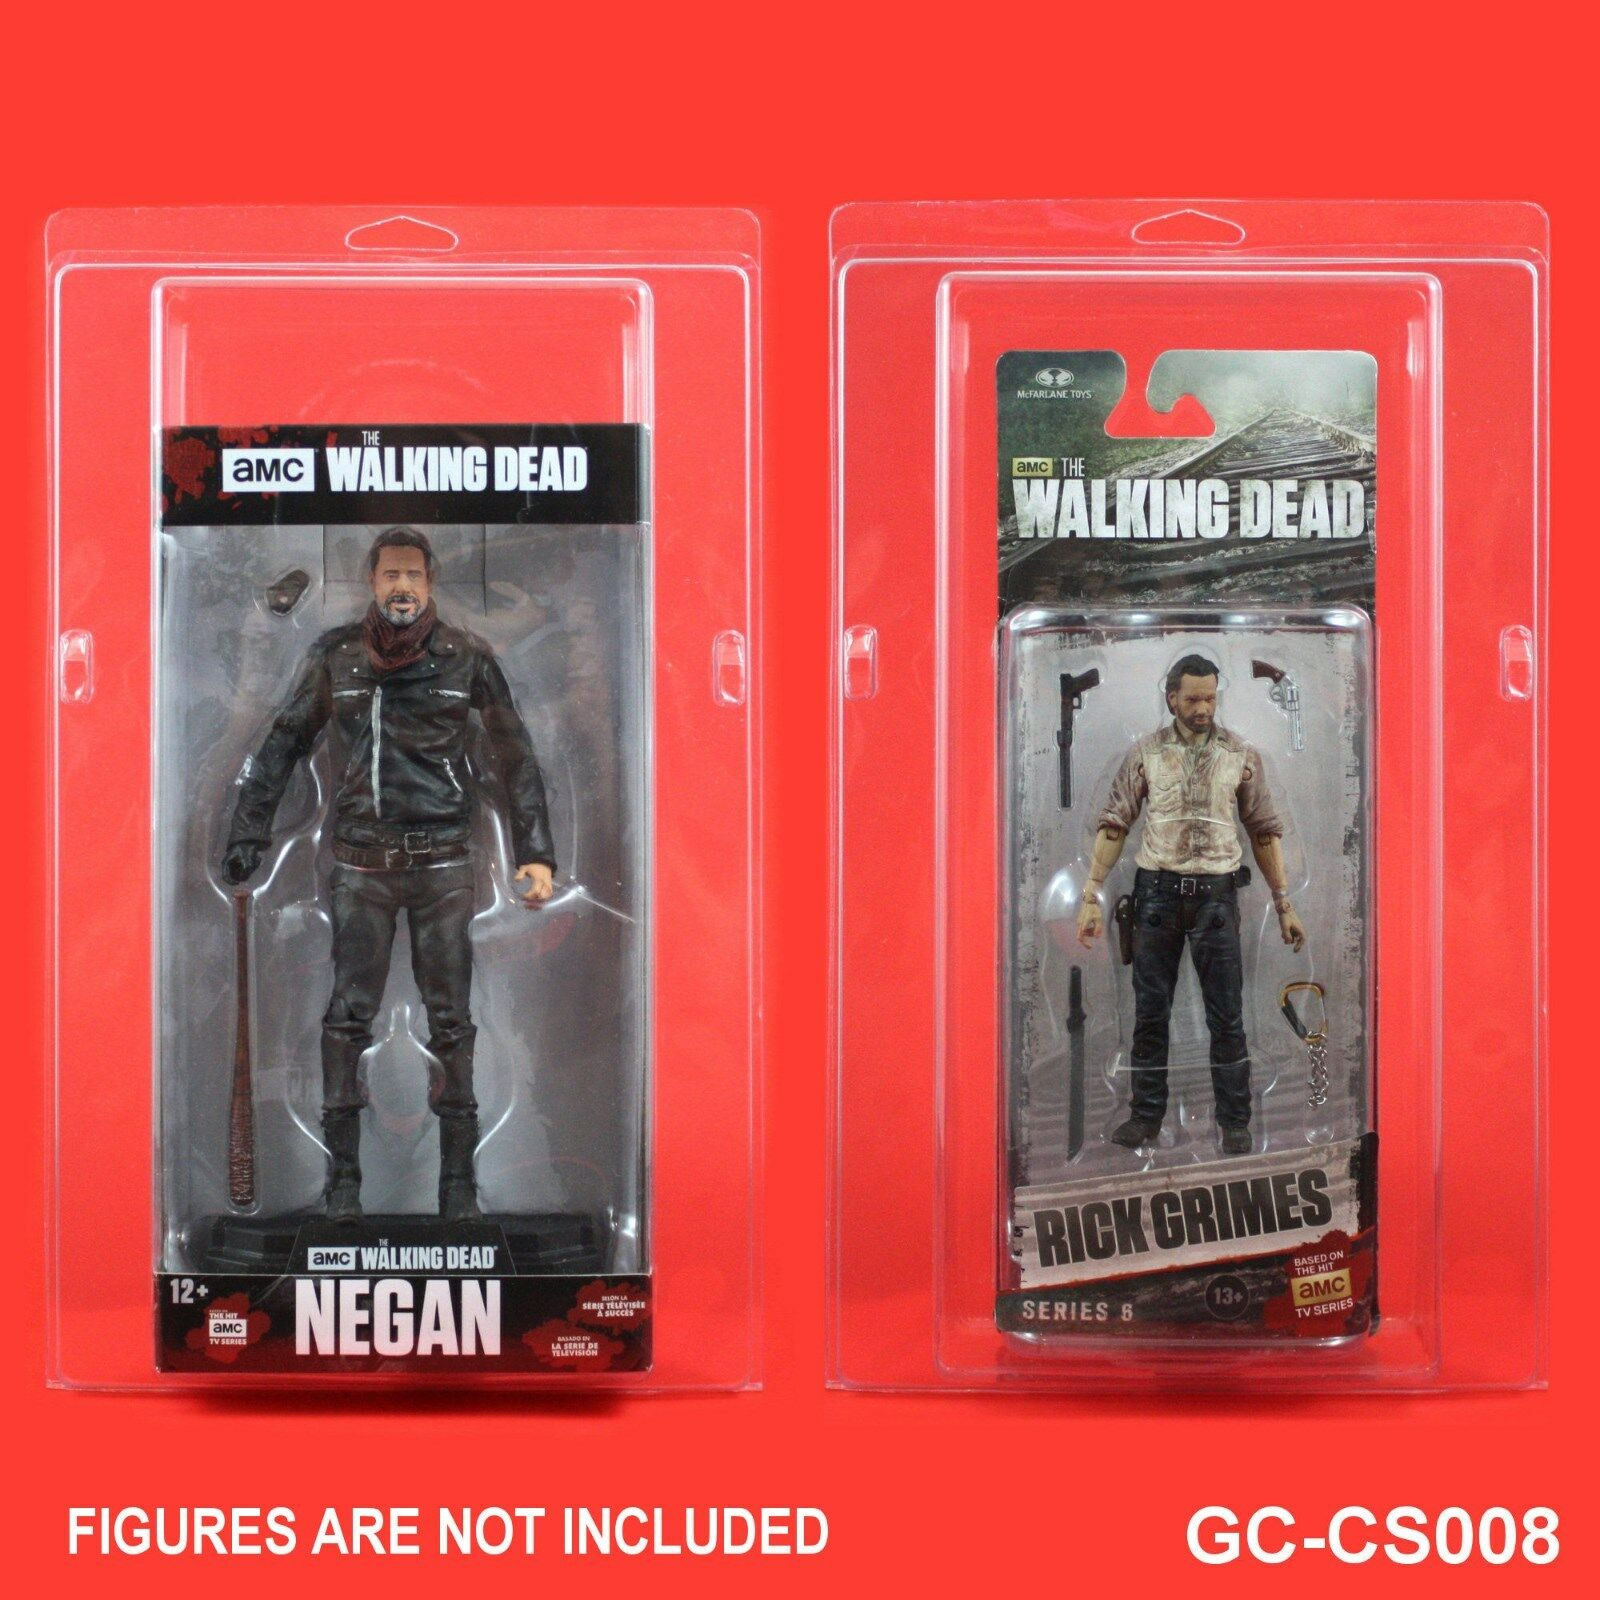 CLAMSHELL ACTION FIGURE PROTECTIVE CASES,AMC McFarlane THE WALKING DEAD GC-CS008